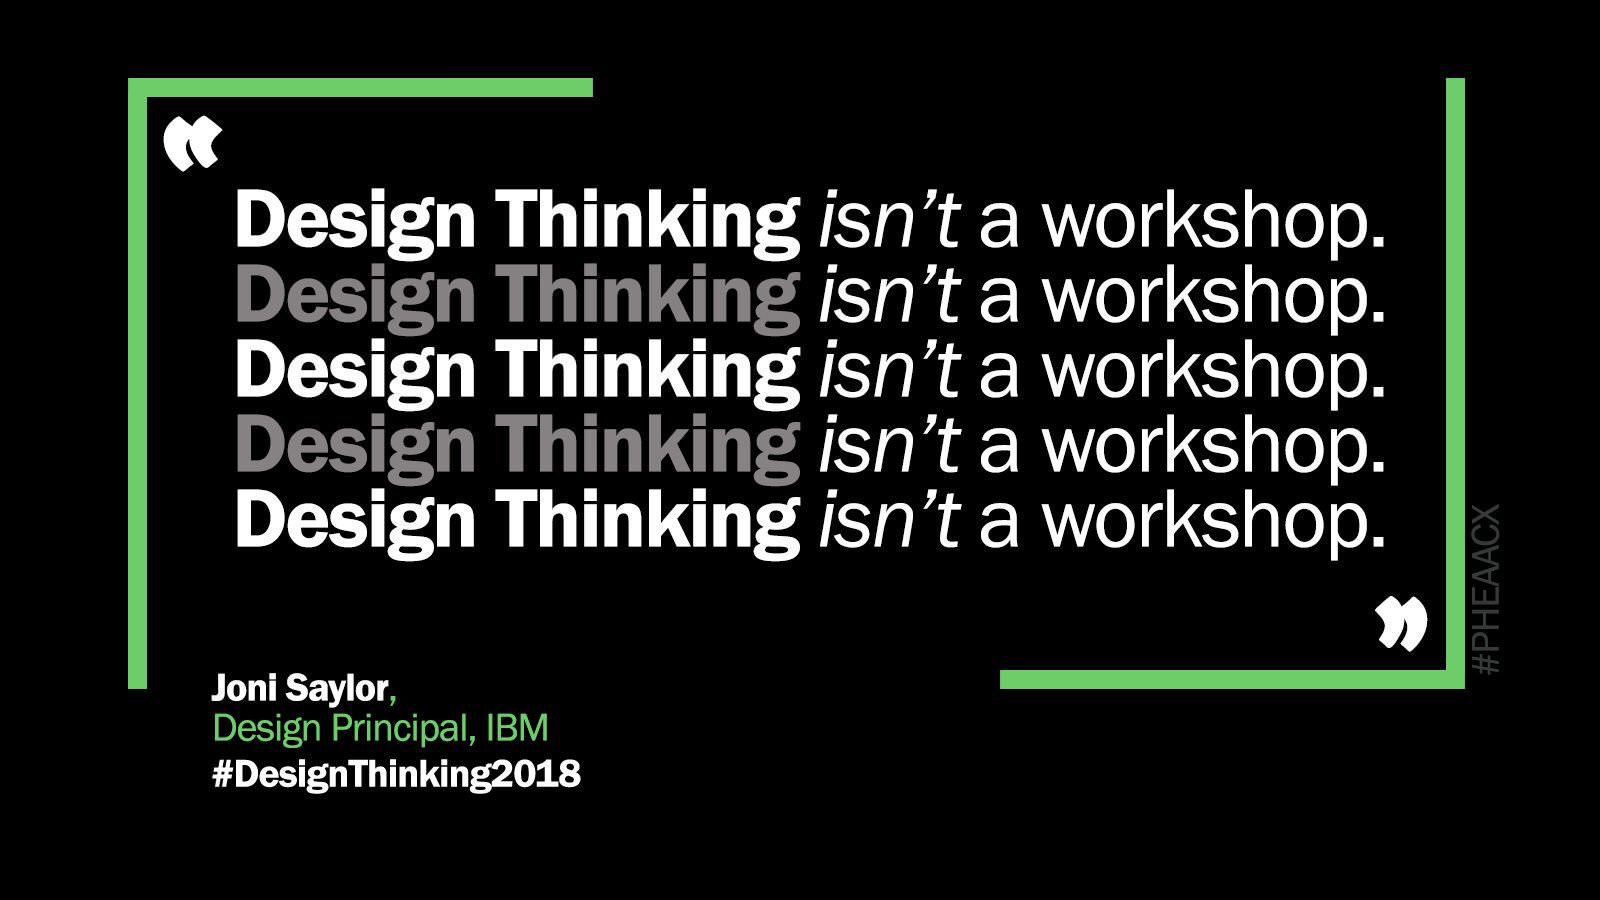 Design Thinking isn't a workshop